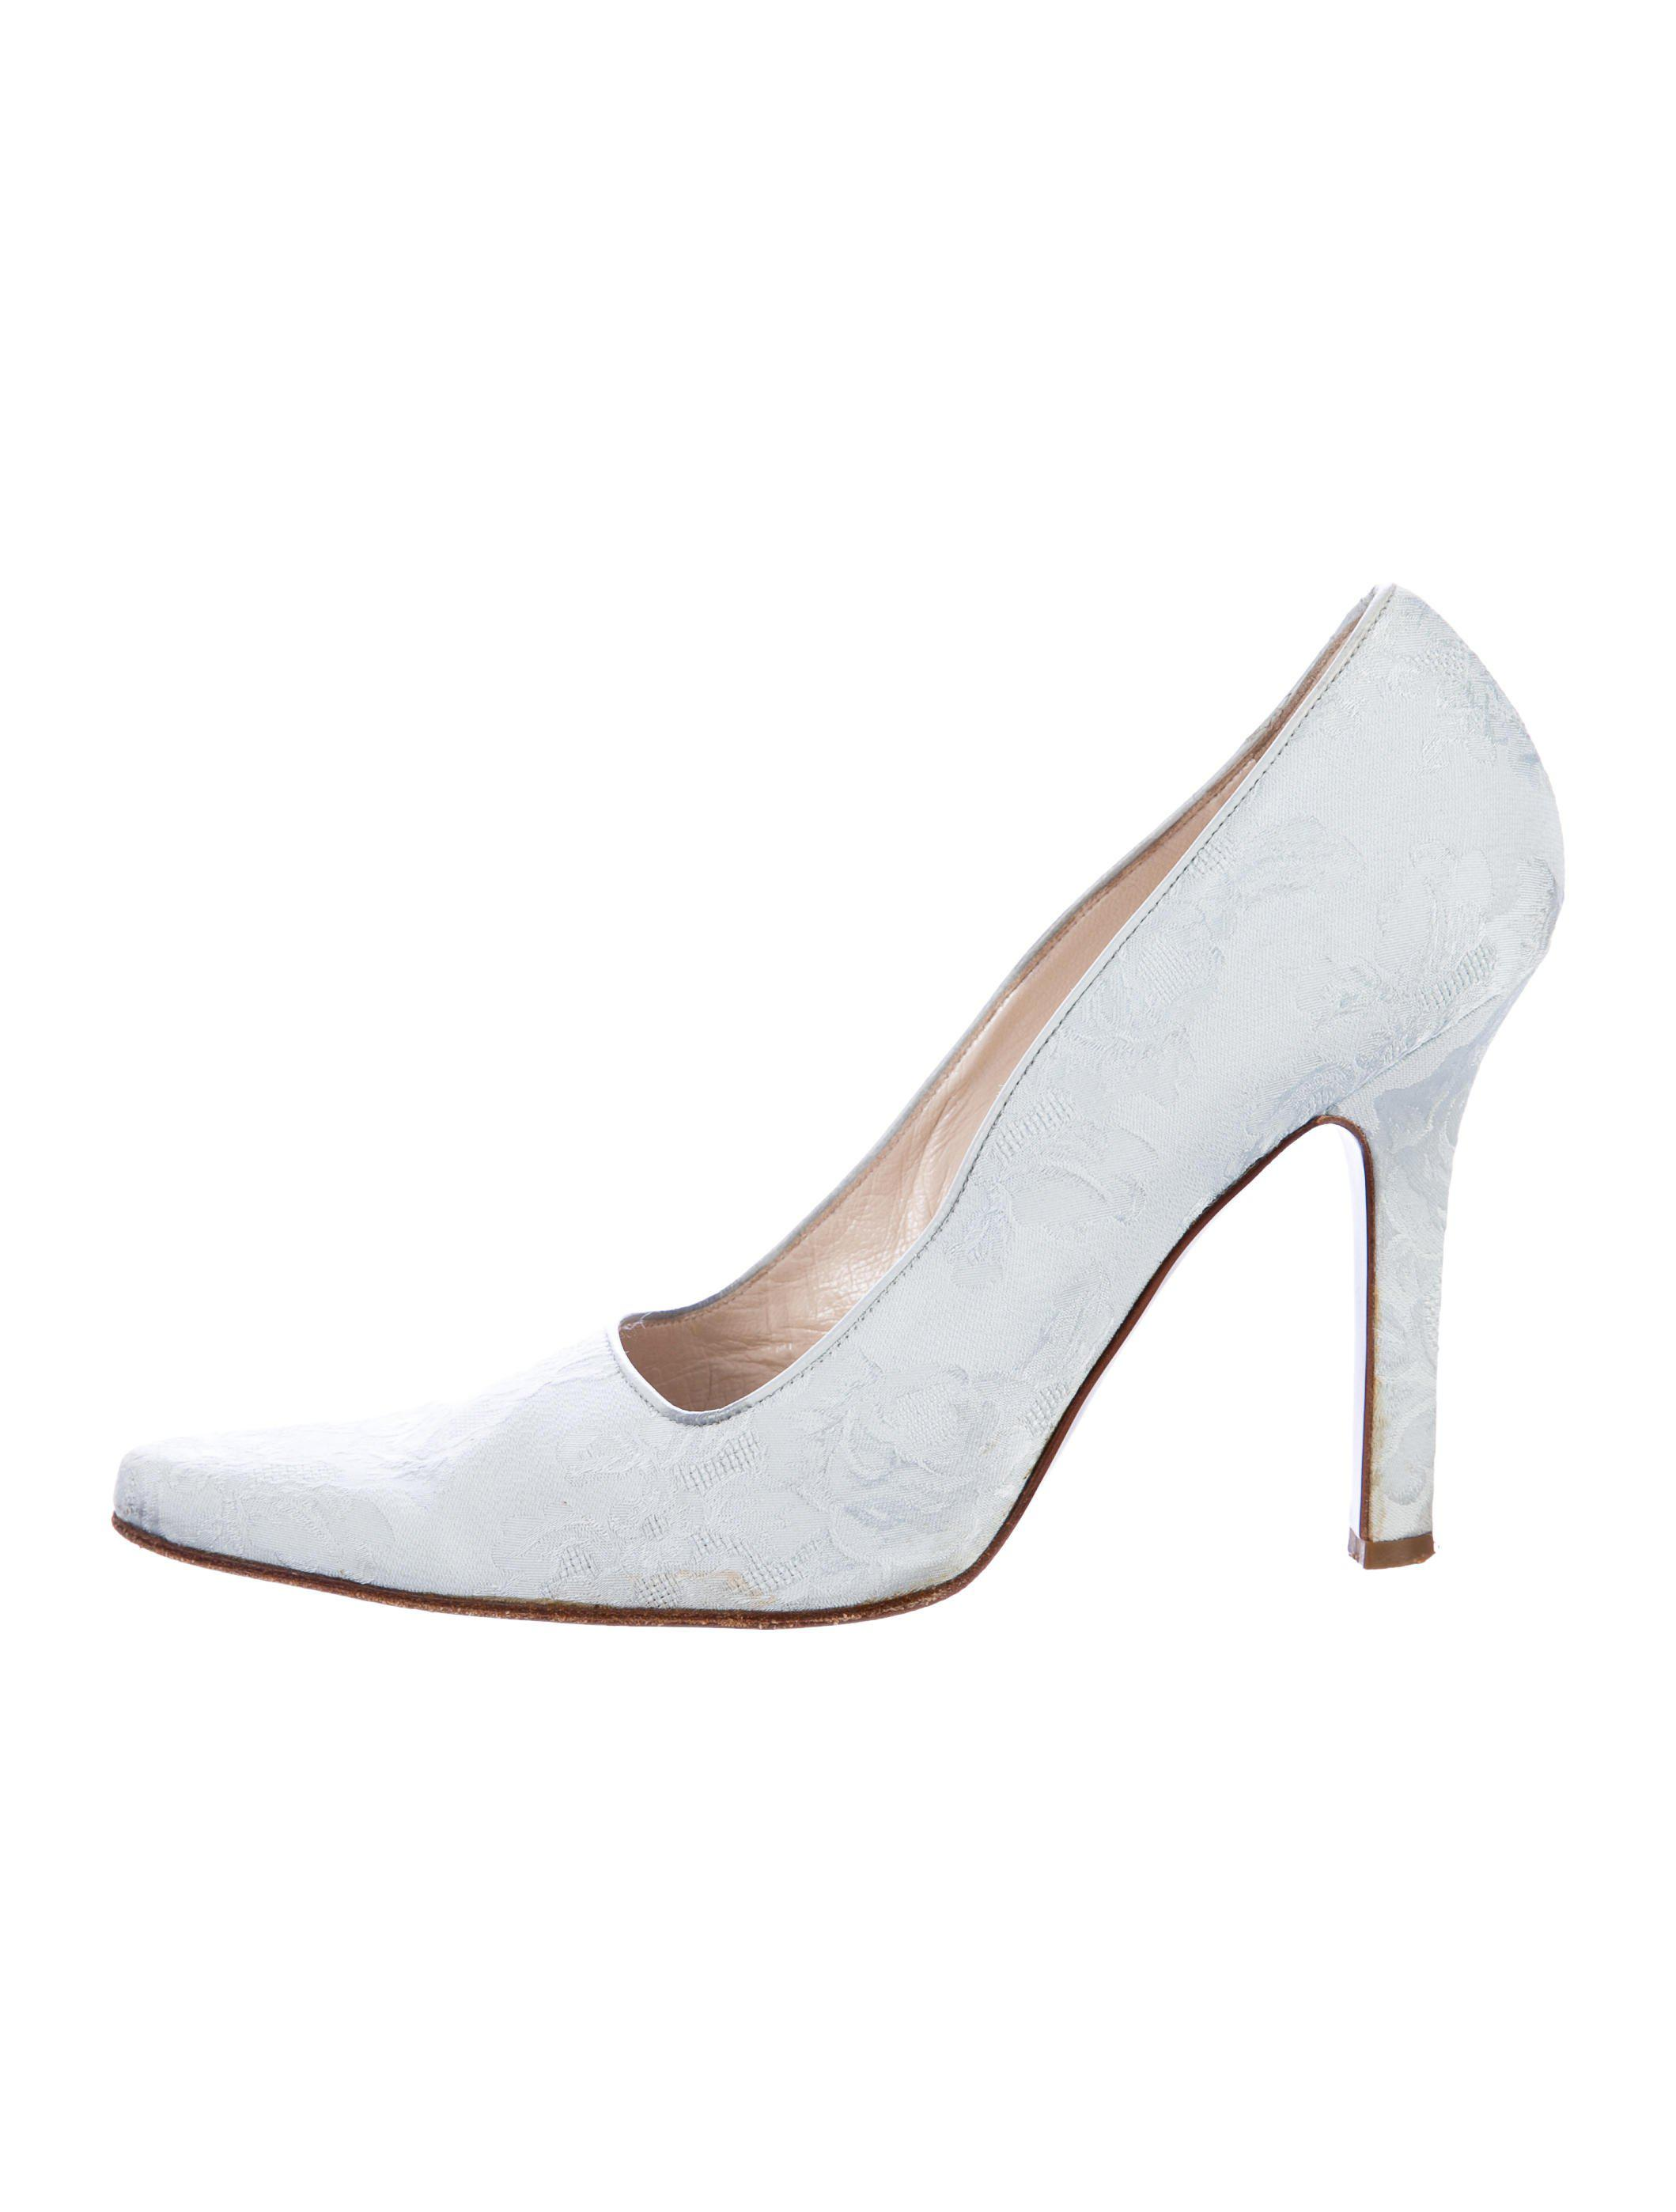 limited edition online Christian Dior Jacquard Pointed-Toe Pumps with mastercard for sale clearance authentic wKk2pdyH